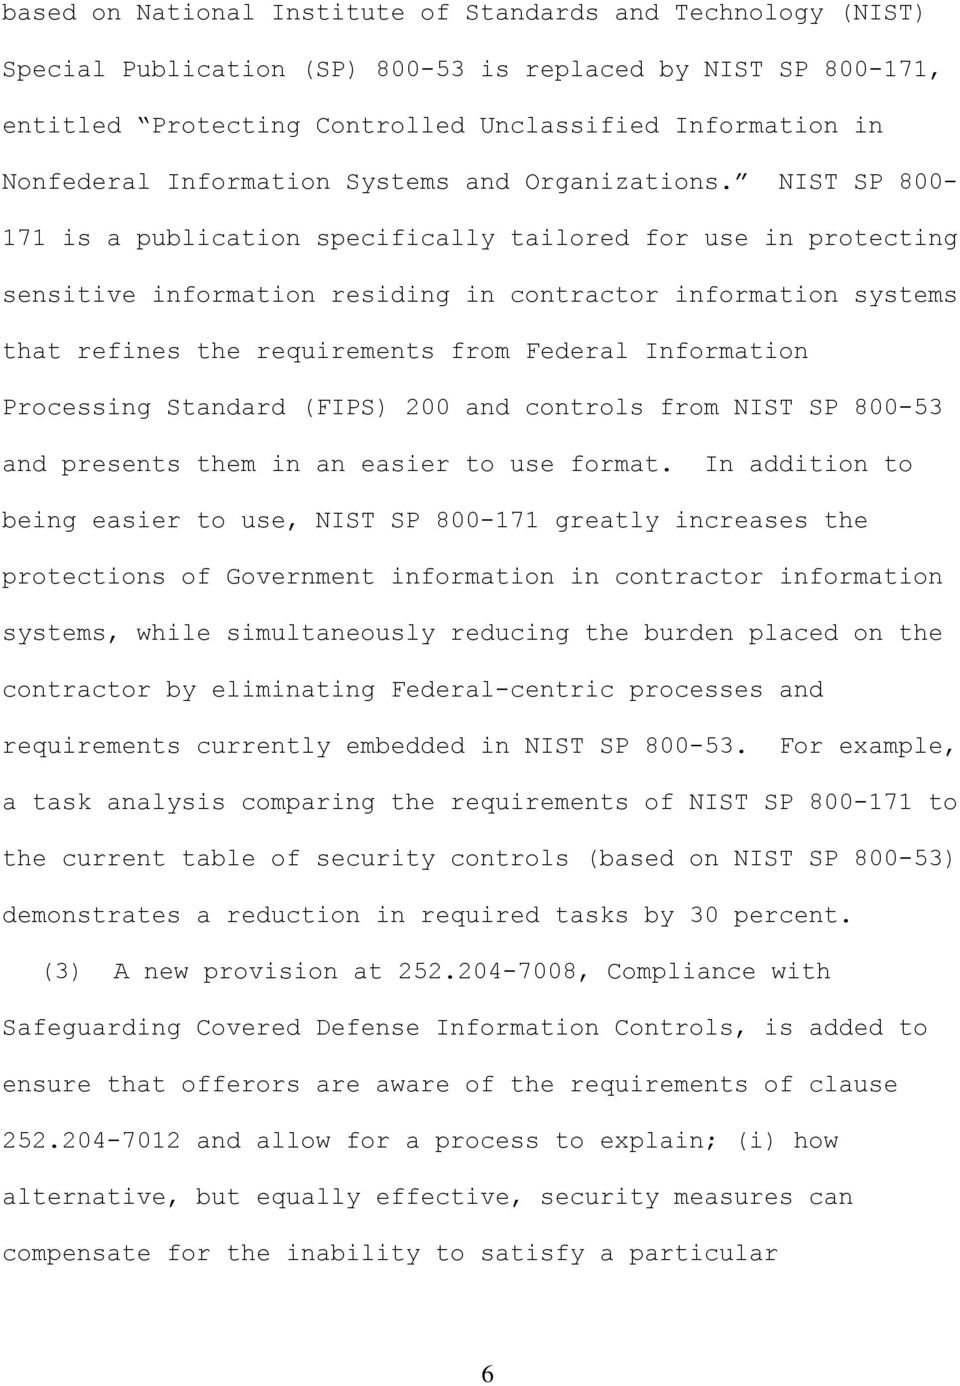 NIST SP 800-171 is a publication specifically tailored for use in protecting sensitive information residing in contractor information systems that refines the requirements from Federal Information